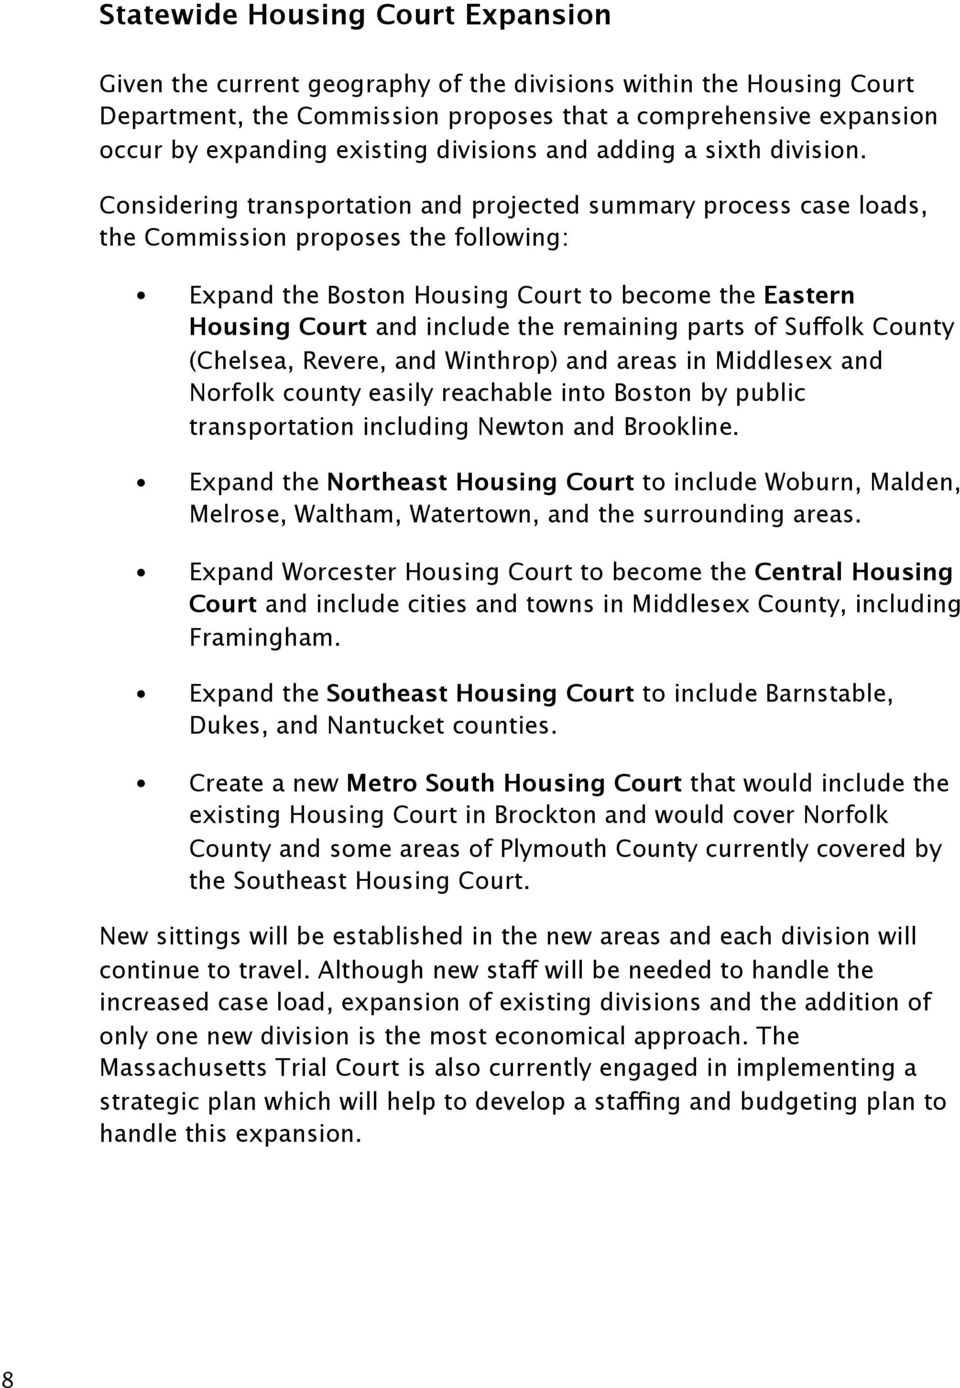 Considering transportation and projected summary process case loads, the Commission proposes the following: Expand the Boston Housing Court to become the Eastern Housing Court and include the